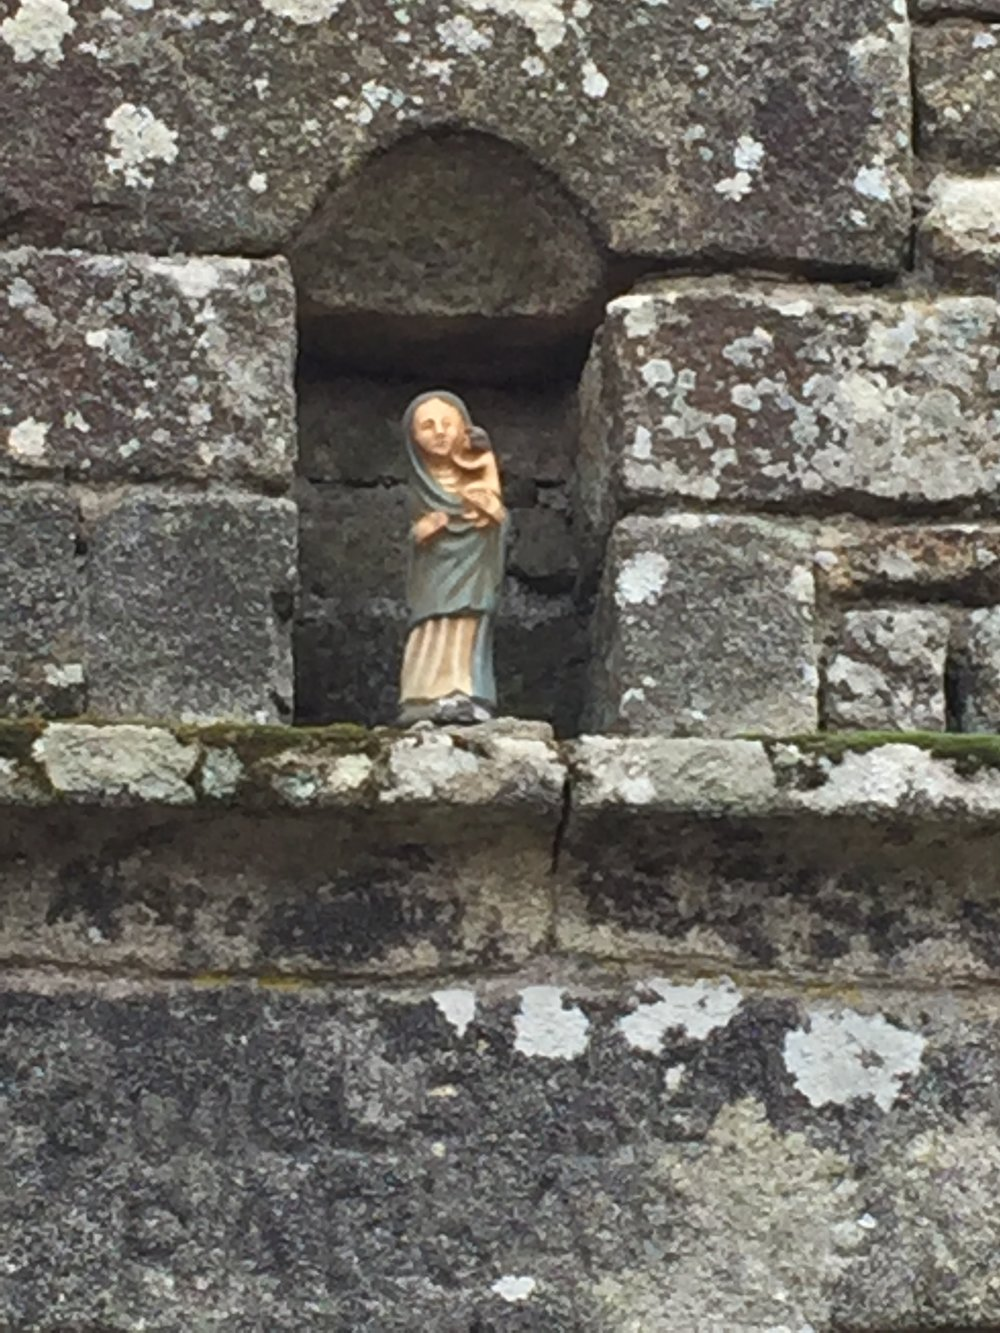 Figurines of Locronan France